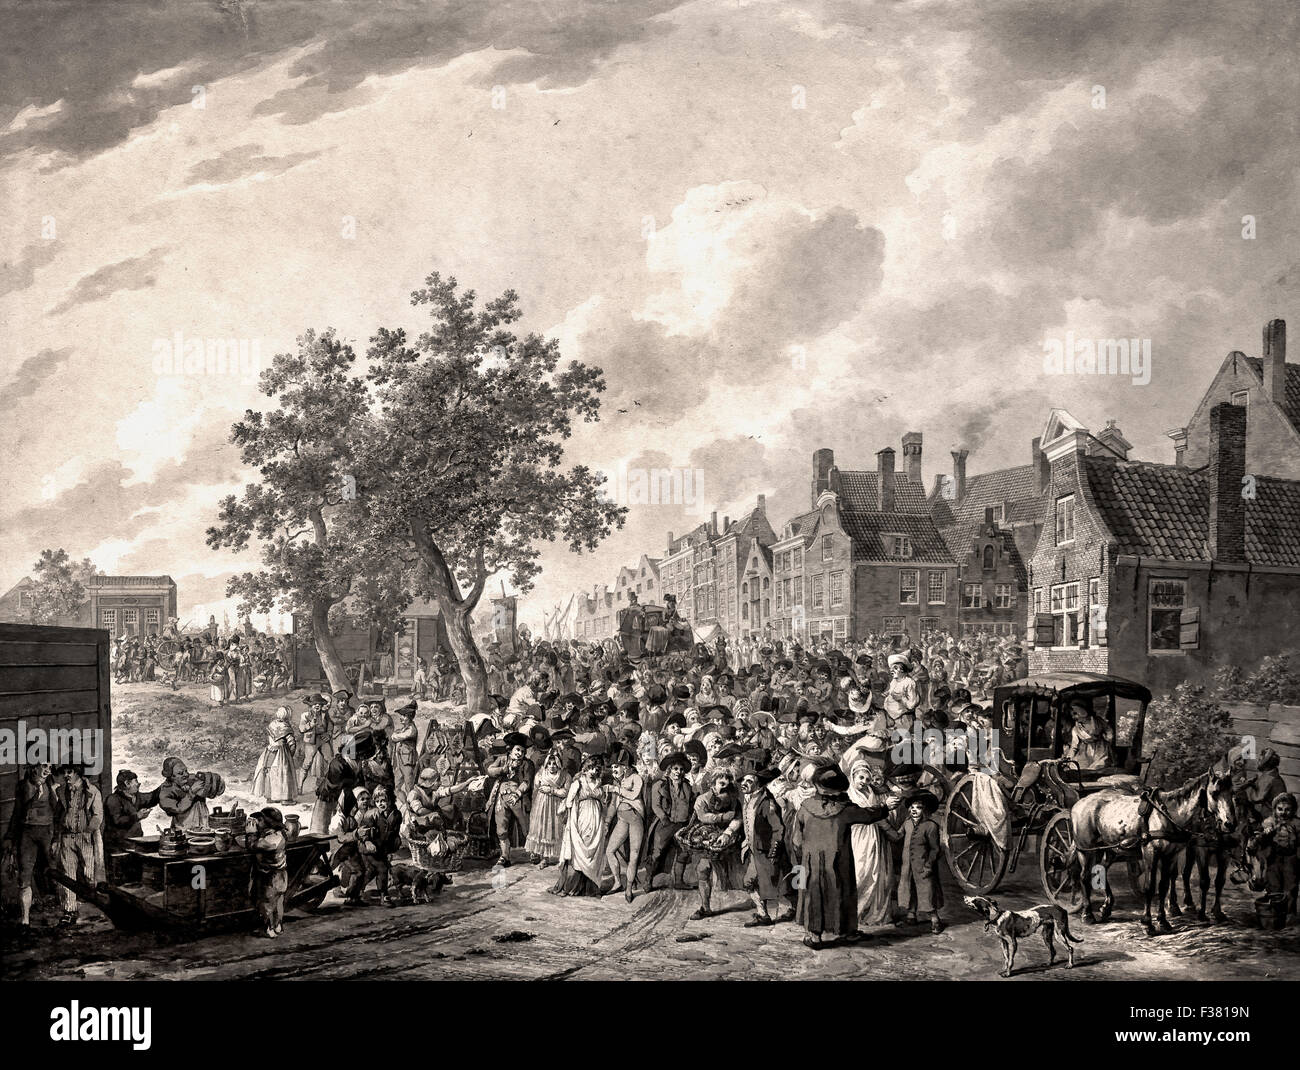 A Large Crowd Gathering on the Outskirts of a Town 1797 Christoffel Meijer 1776 - 1813 Dutch Netherlands drawing - Stock Image